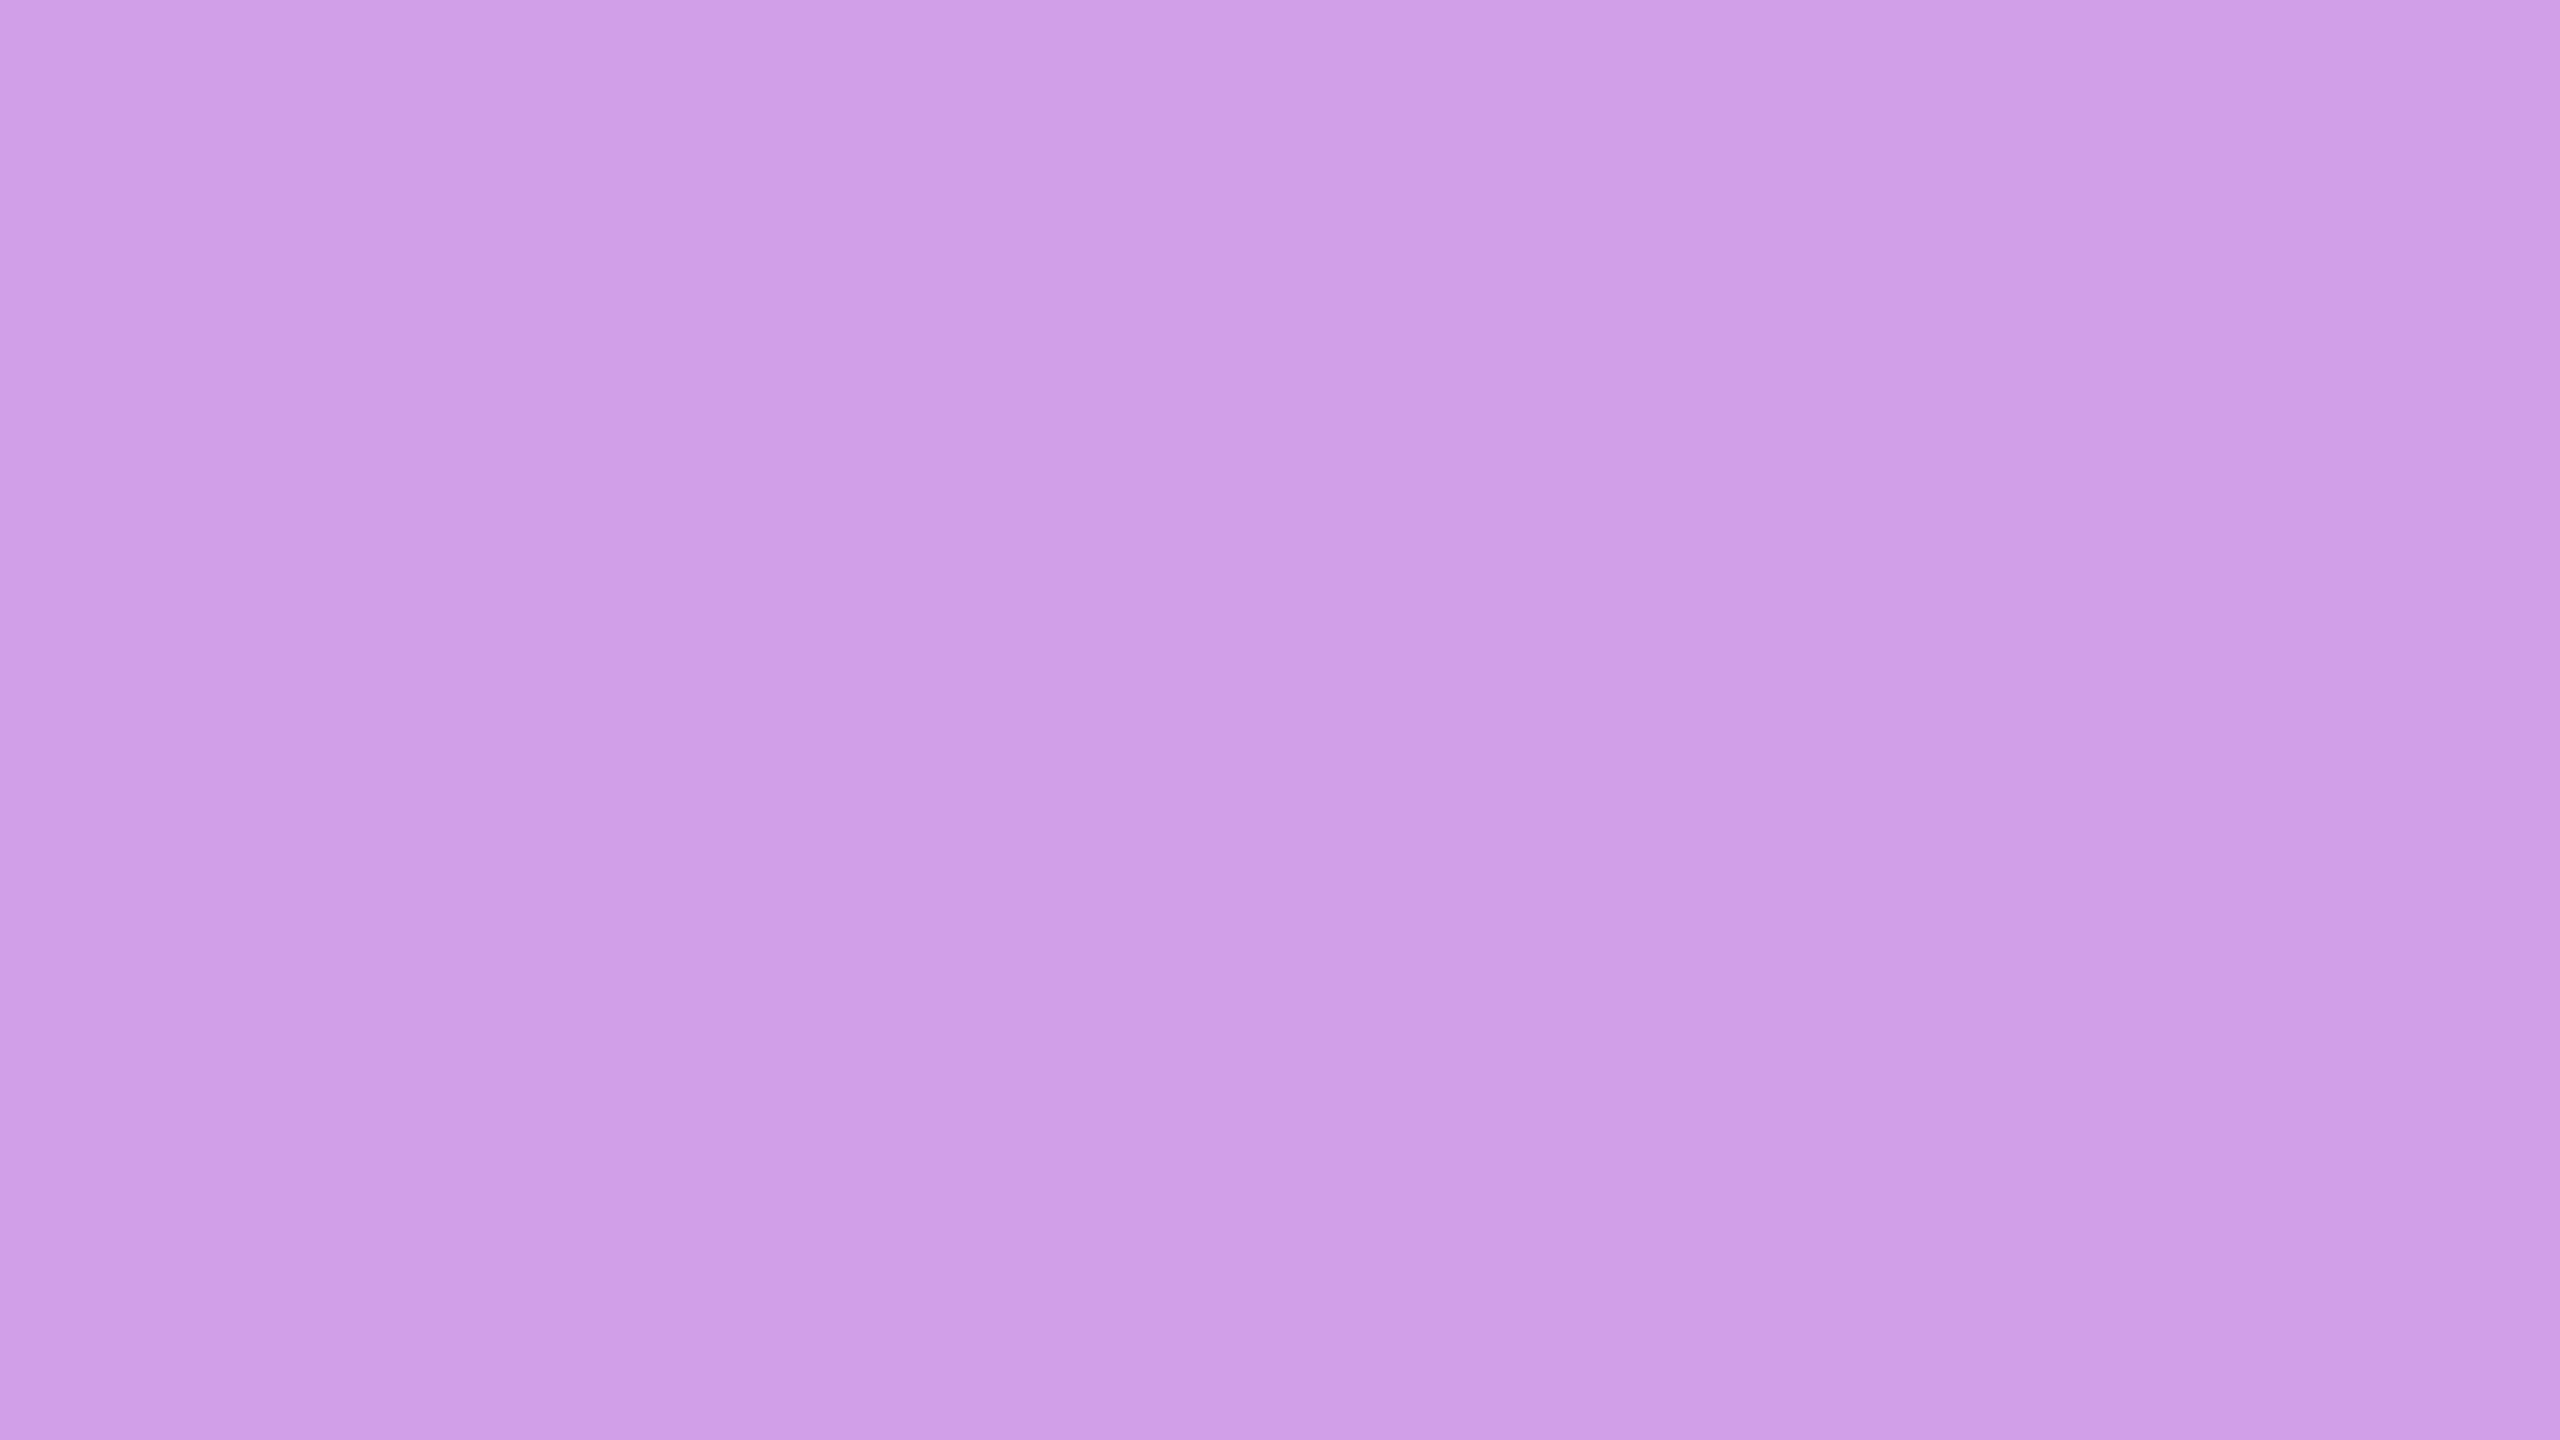 2560x1440 Bright Ube Solid Color Background